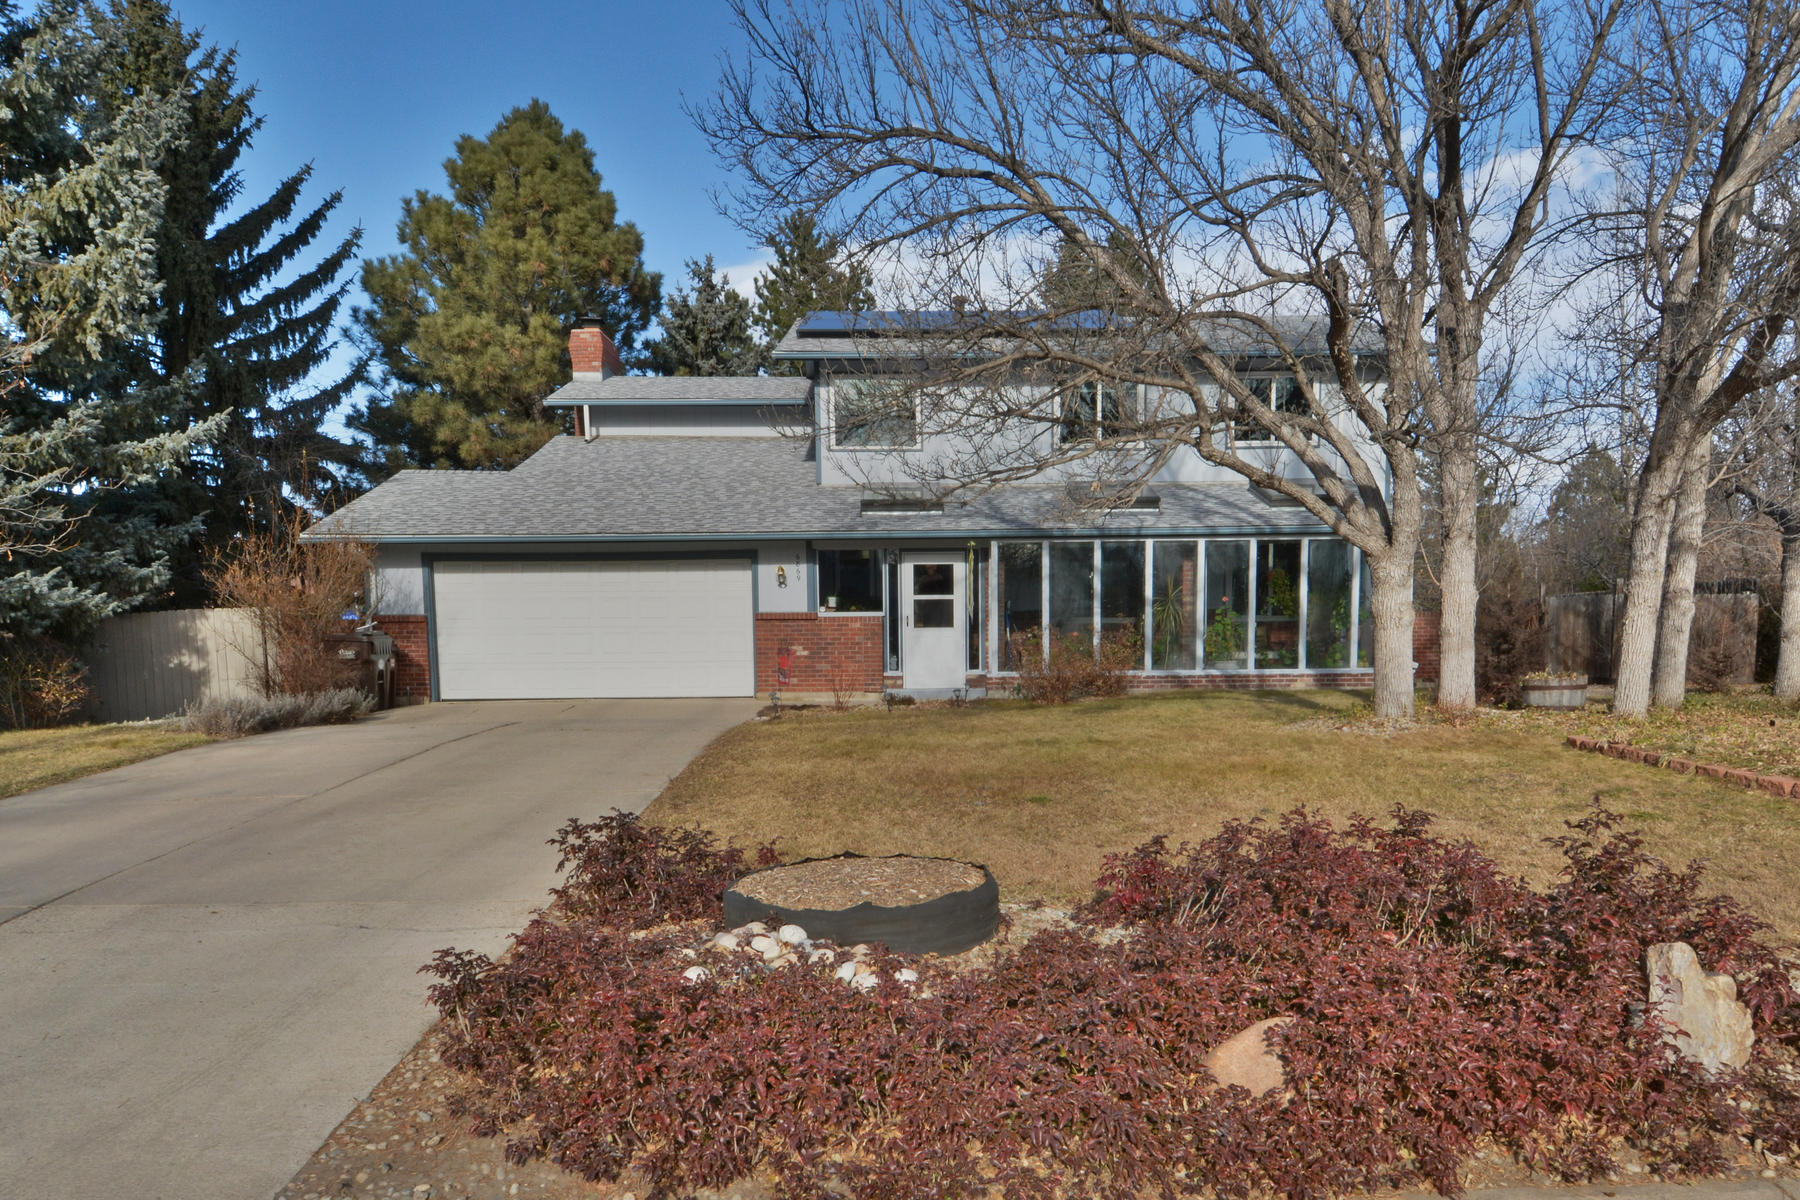 Single Family Home for Active at Pride Of Ownership At Its Finest 6869 Harvest Rd Boulder, Colorado 80301 United States